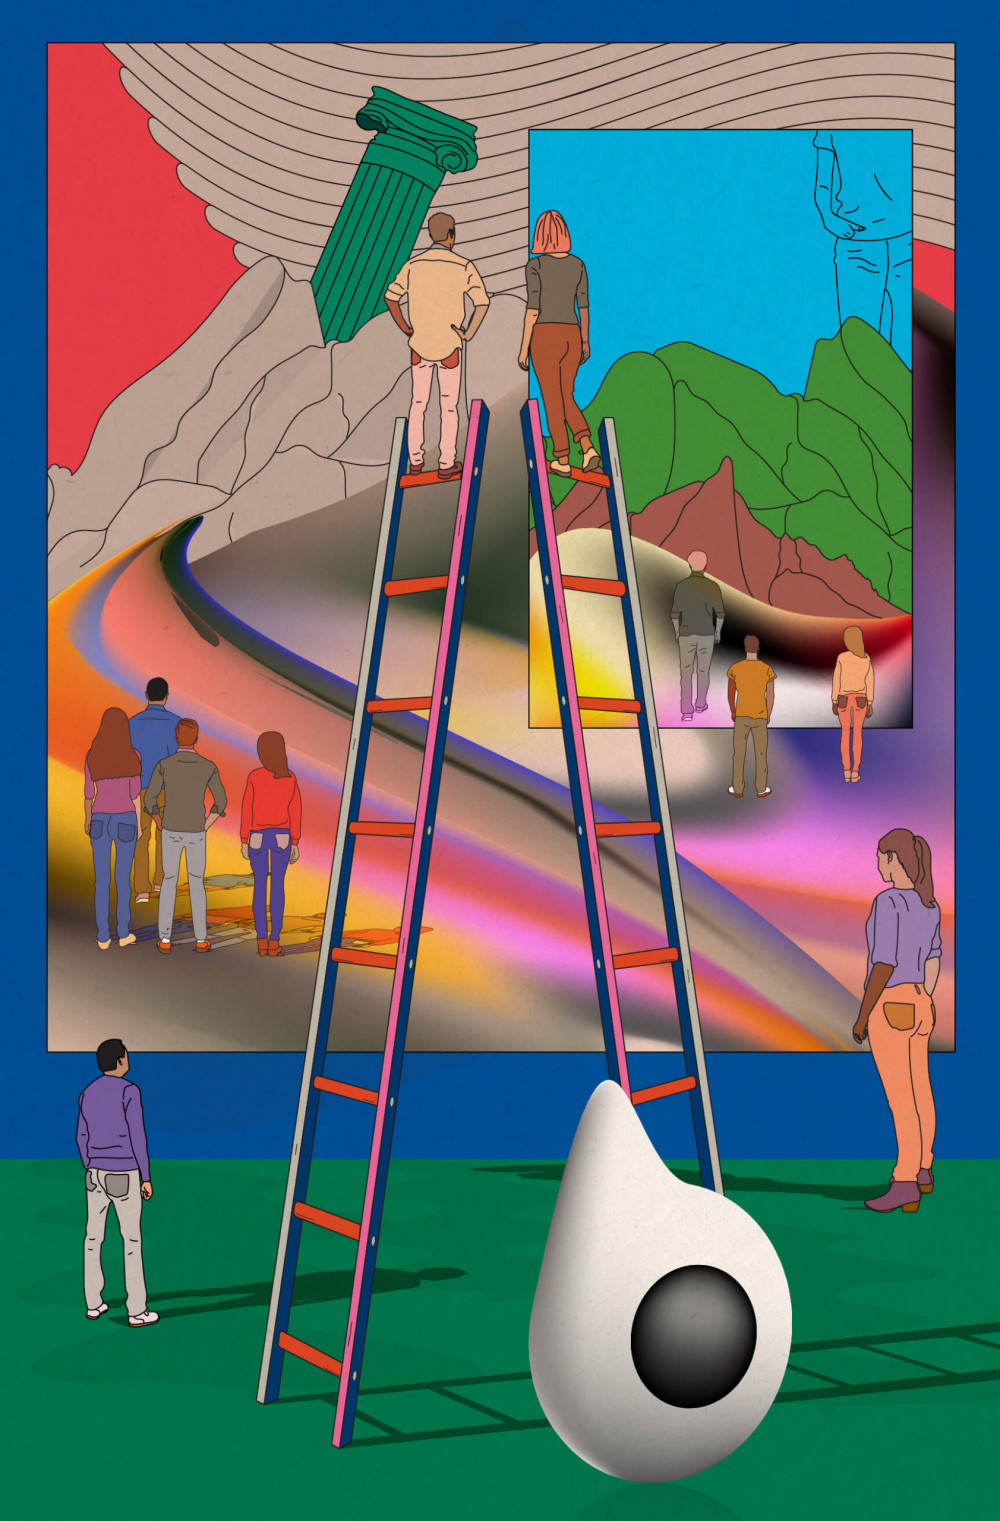 Eleven people stare off into the distance, away from the viewer. They are standing in a museum, two of them at the top of ladders. They seem to be staring at an abstract image of a mountain range.